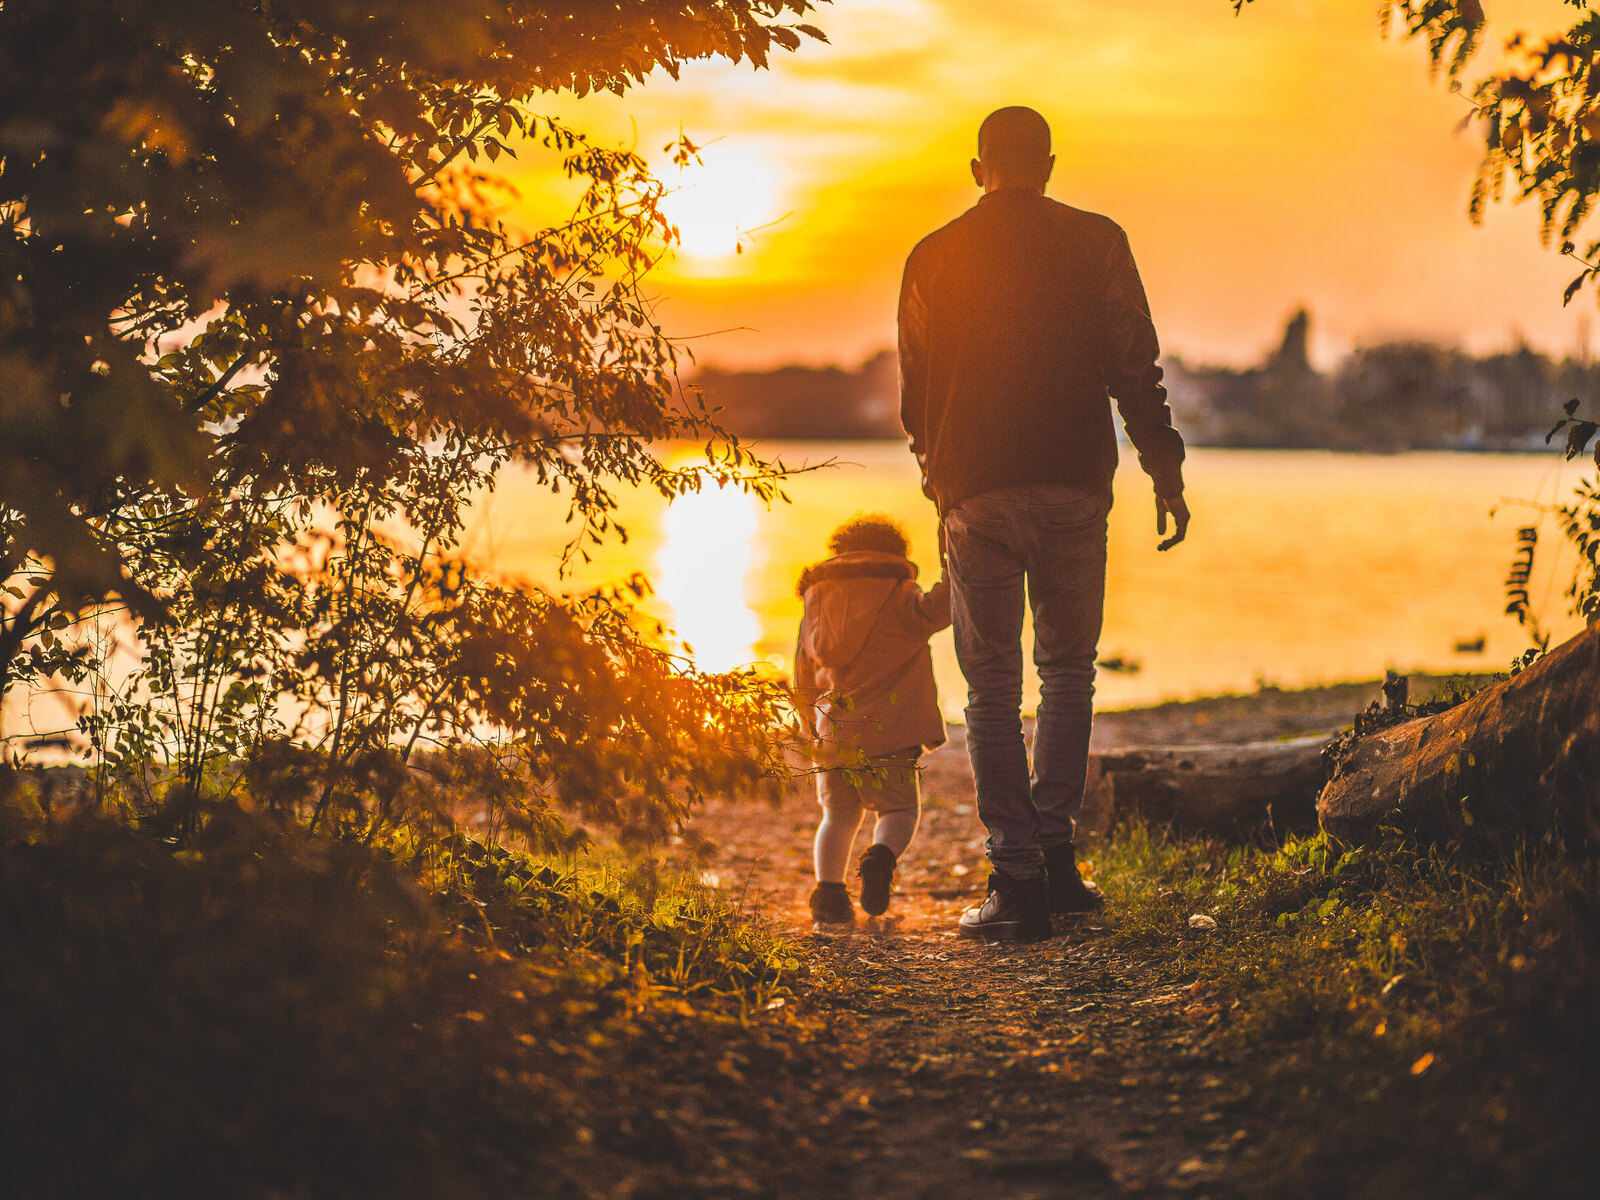 father-and-kid-walking-towards-lake-3o.jpg